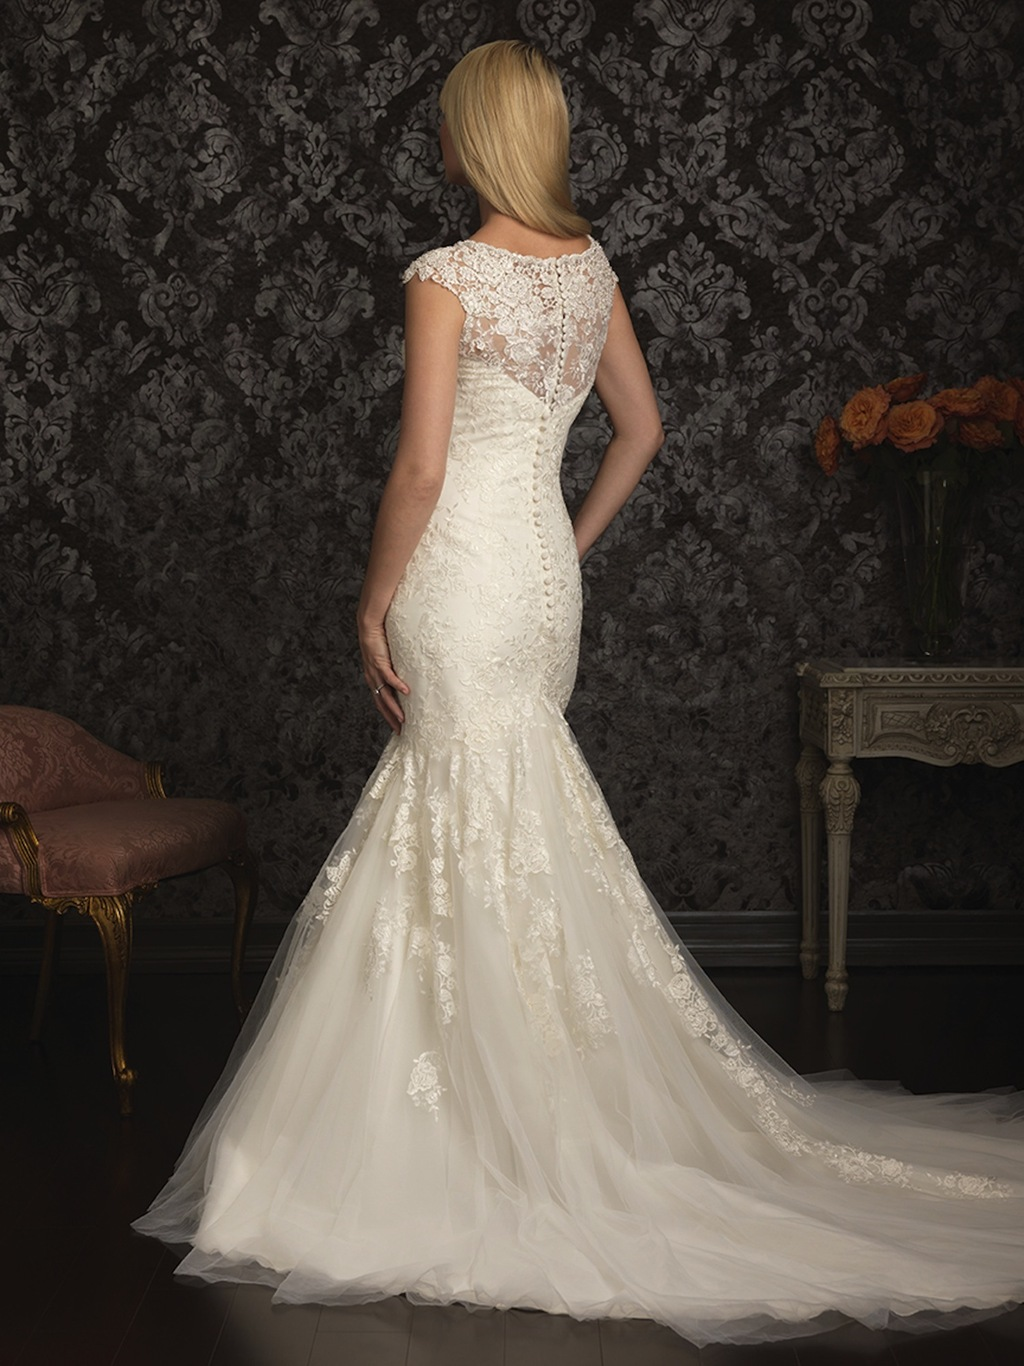 Allure-bridals-wedding-dress-bridal-gown-allure-collection-2013-9025b.full